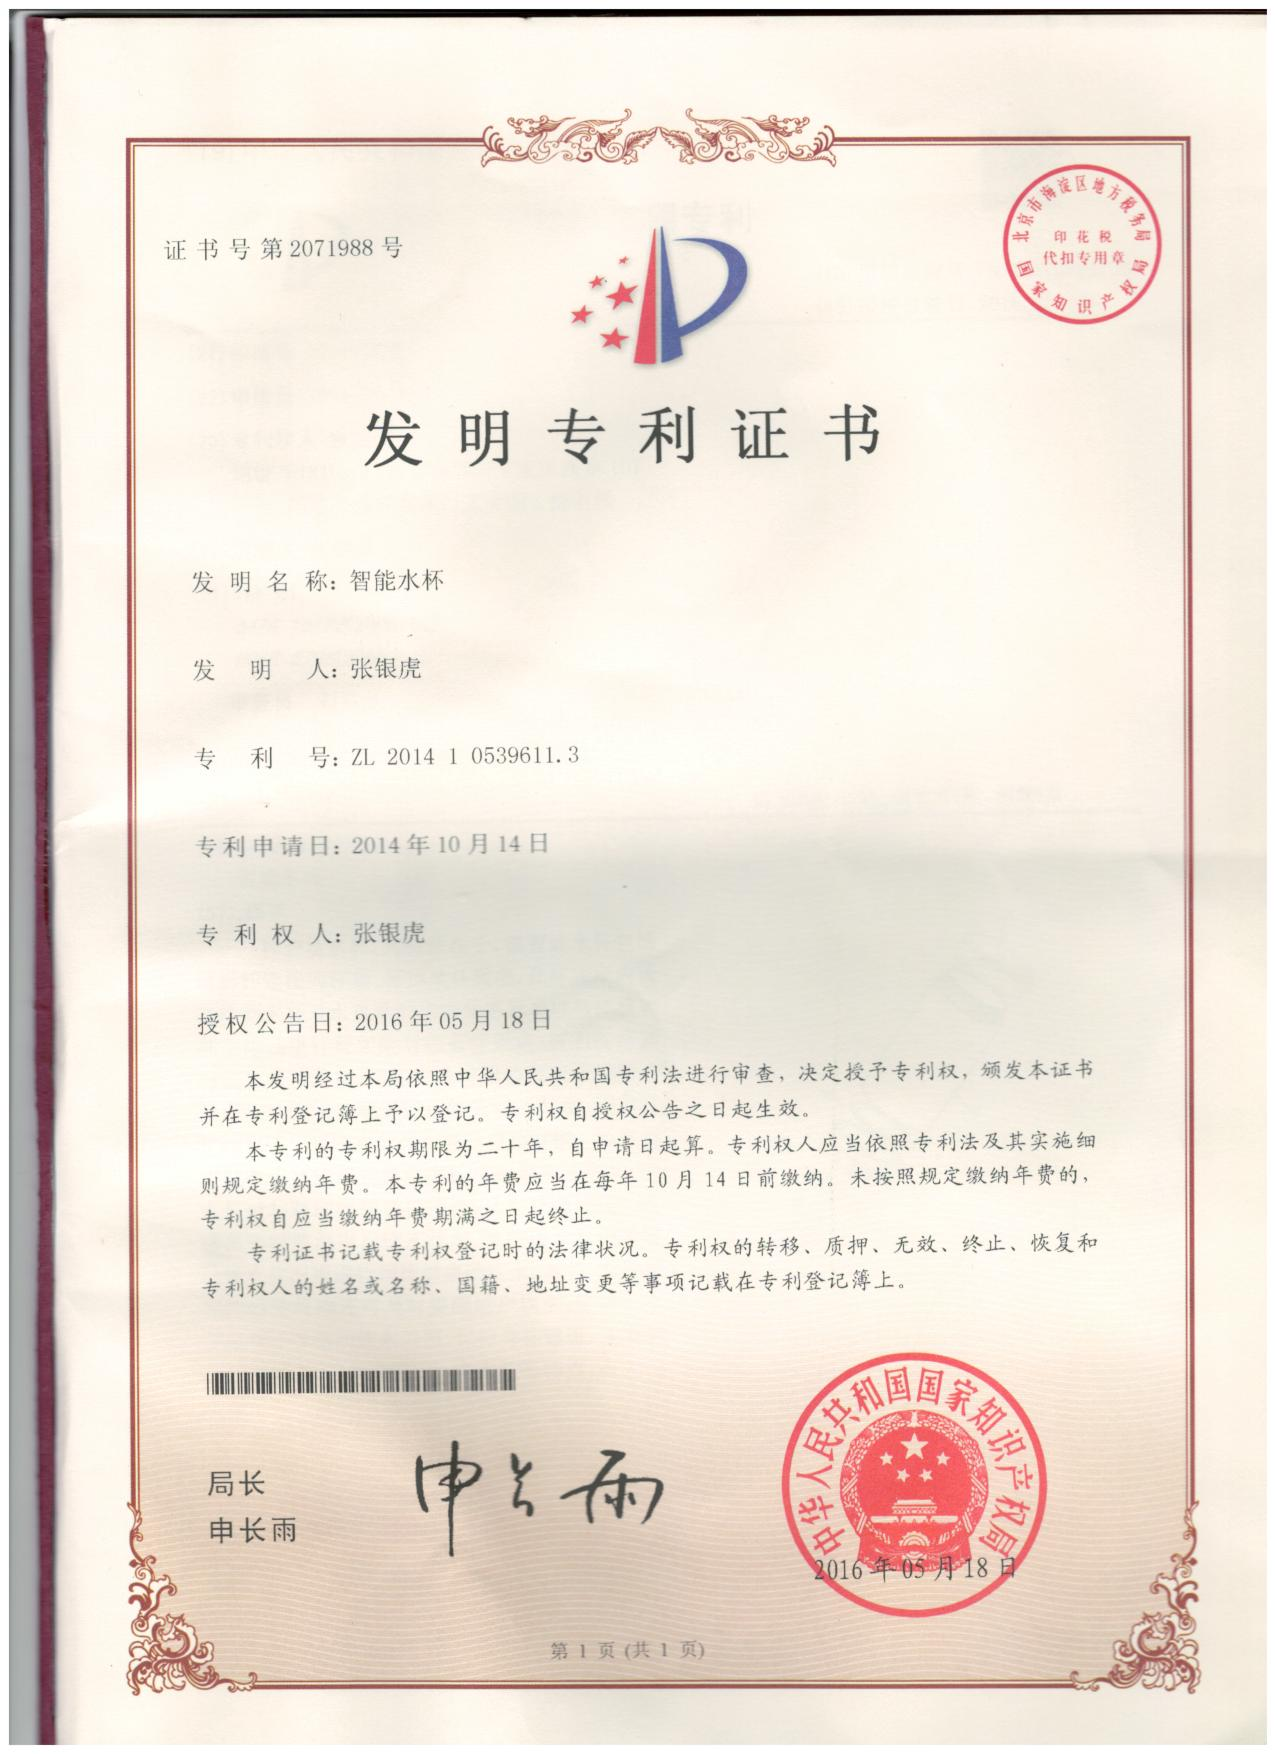 Certificate for inventor's patent right